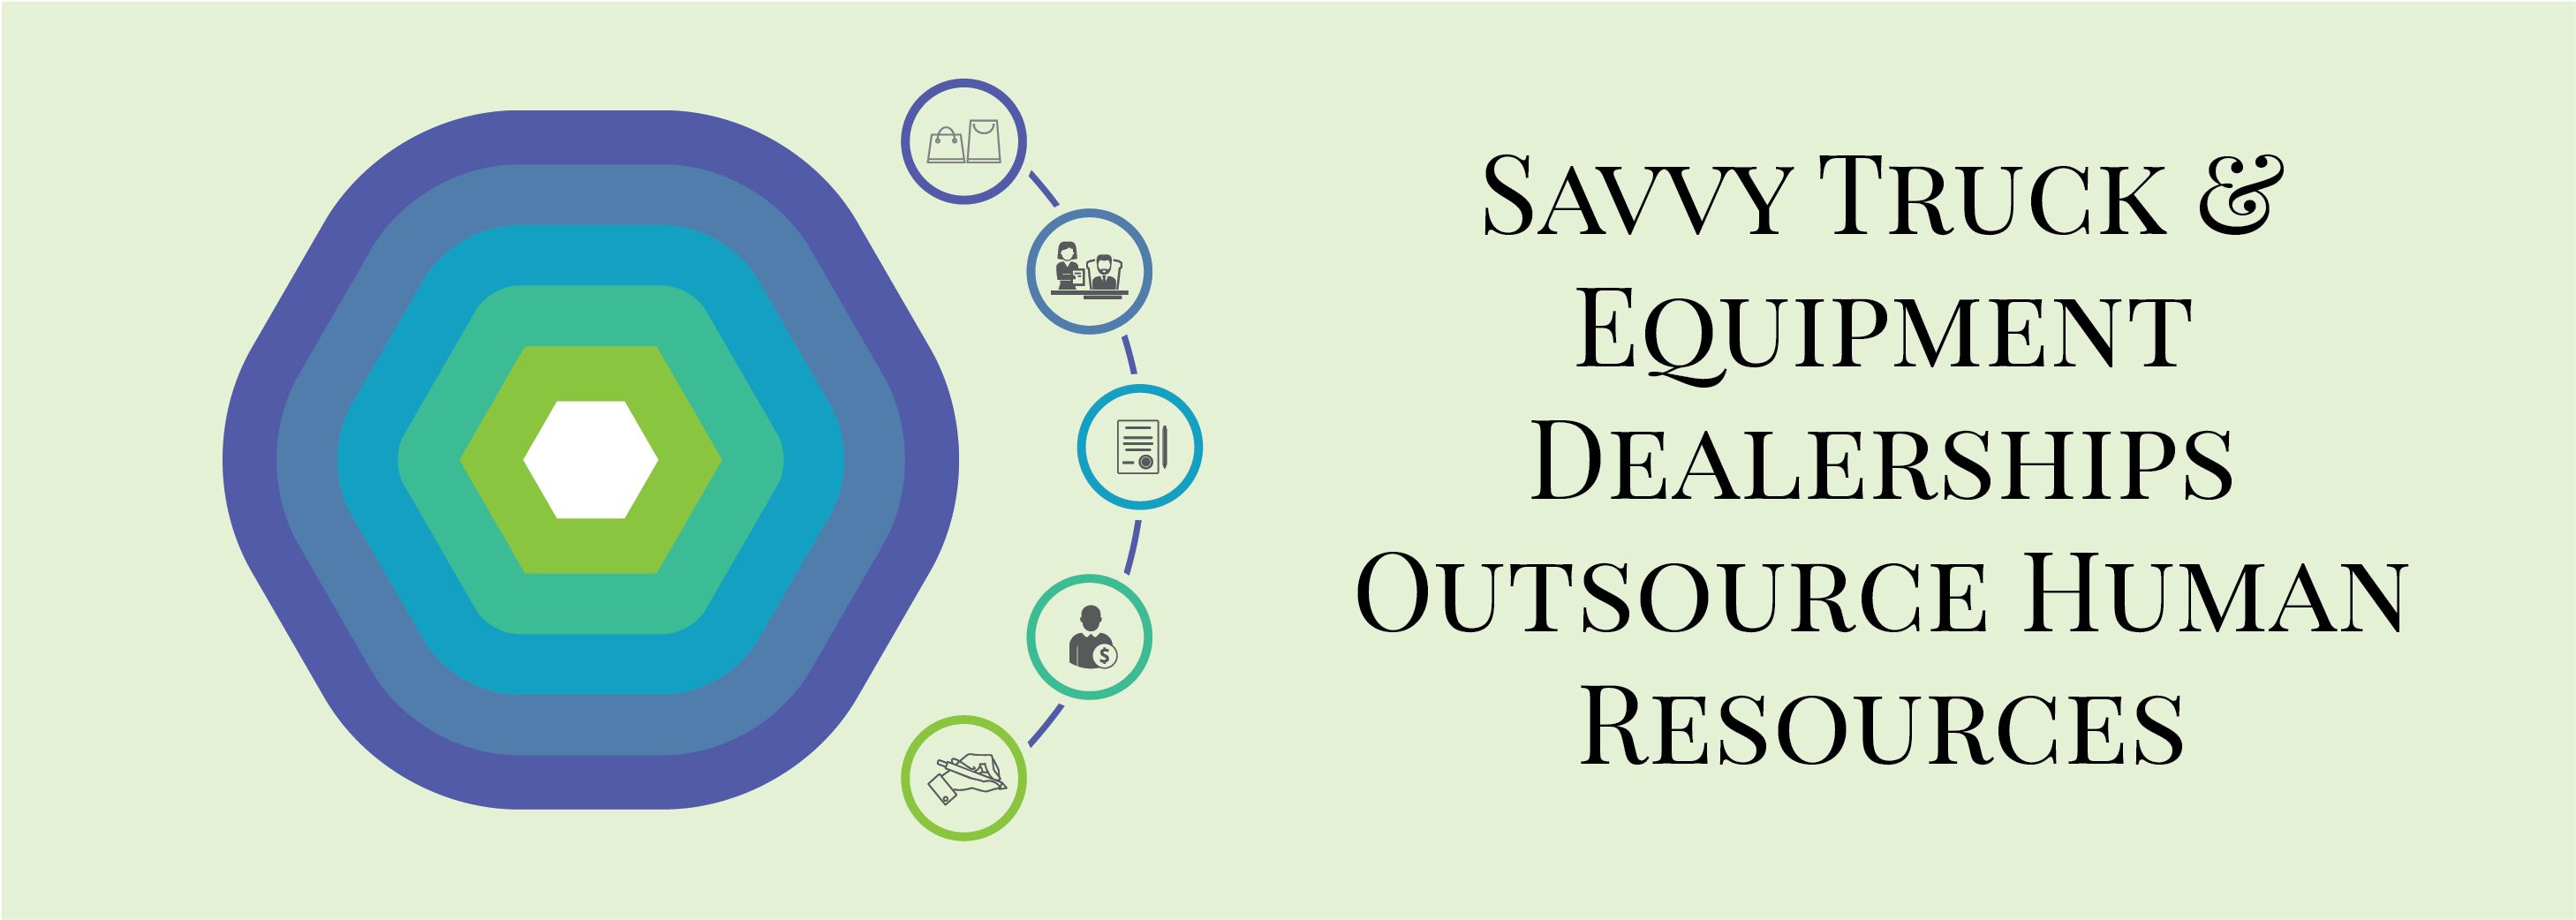 Savvy Truck & Equipment Dealerships Outsource Human Resources   ADI Agency